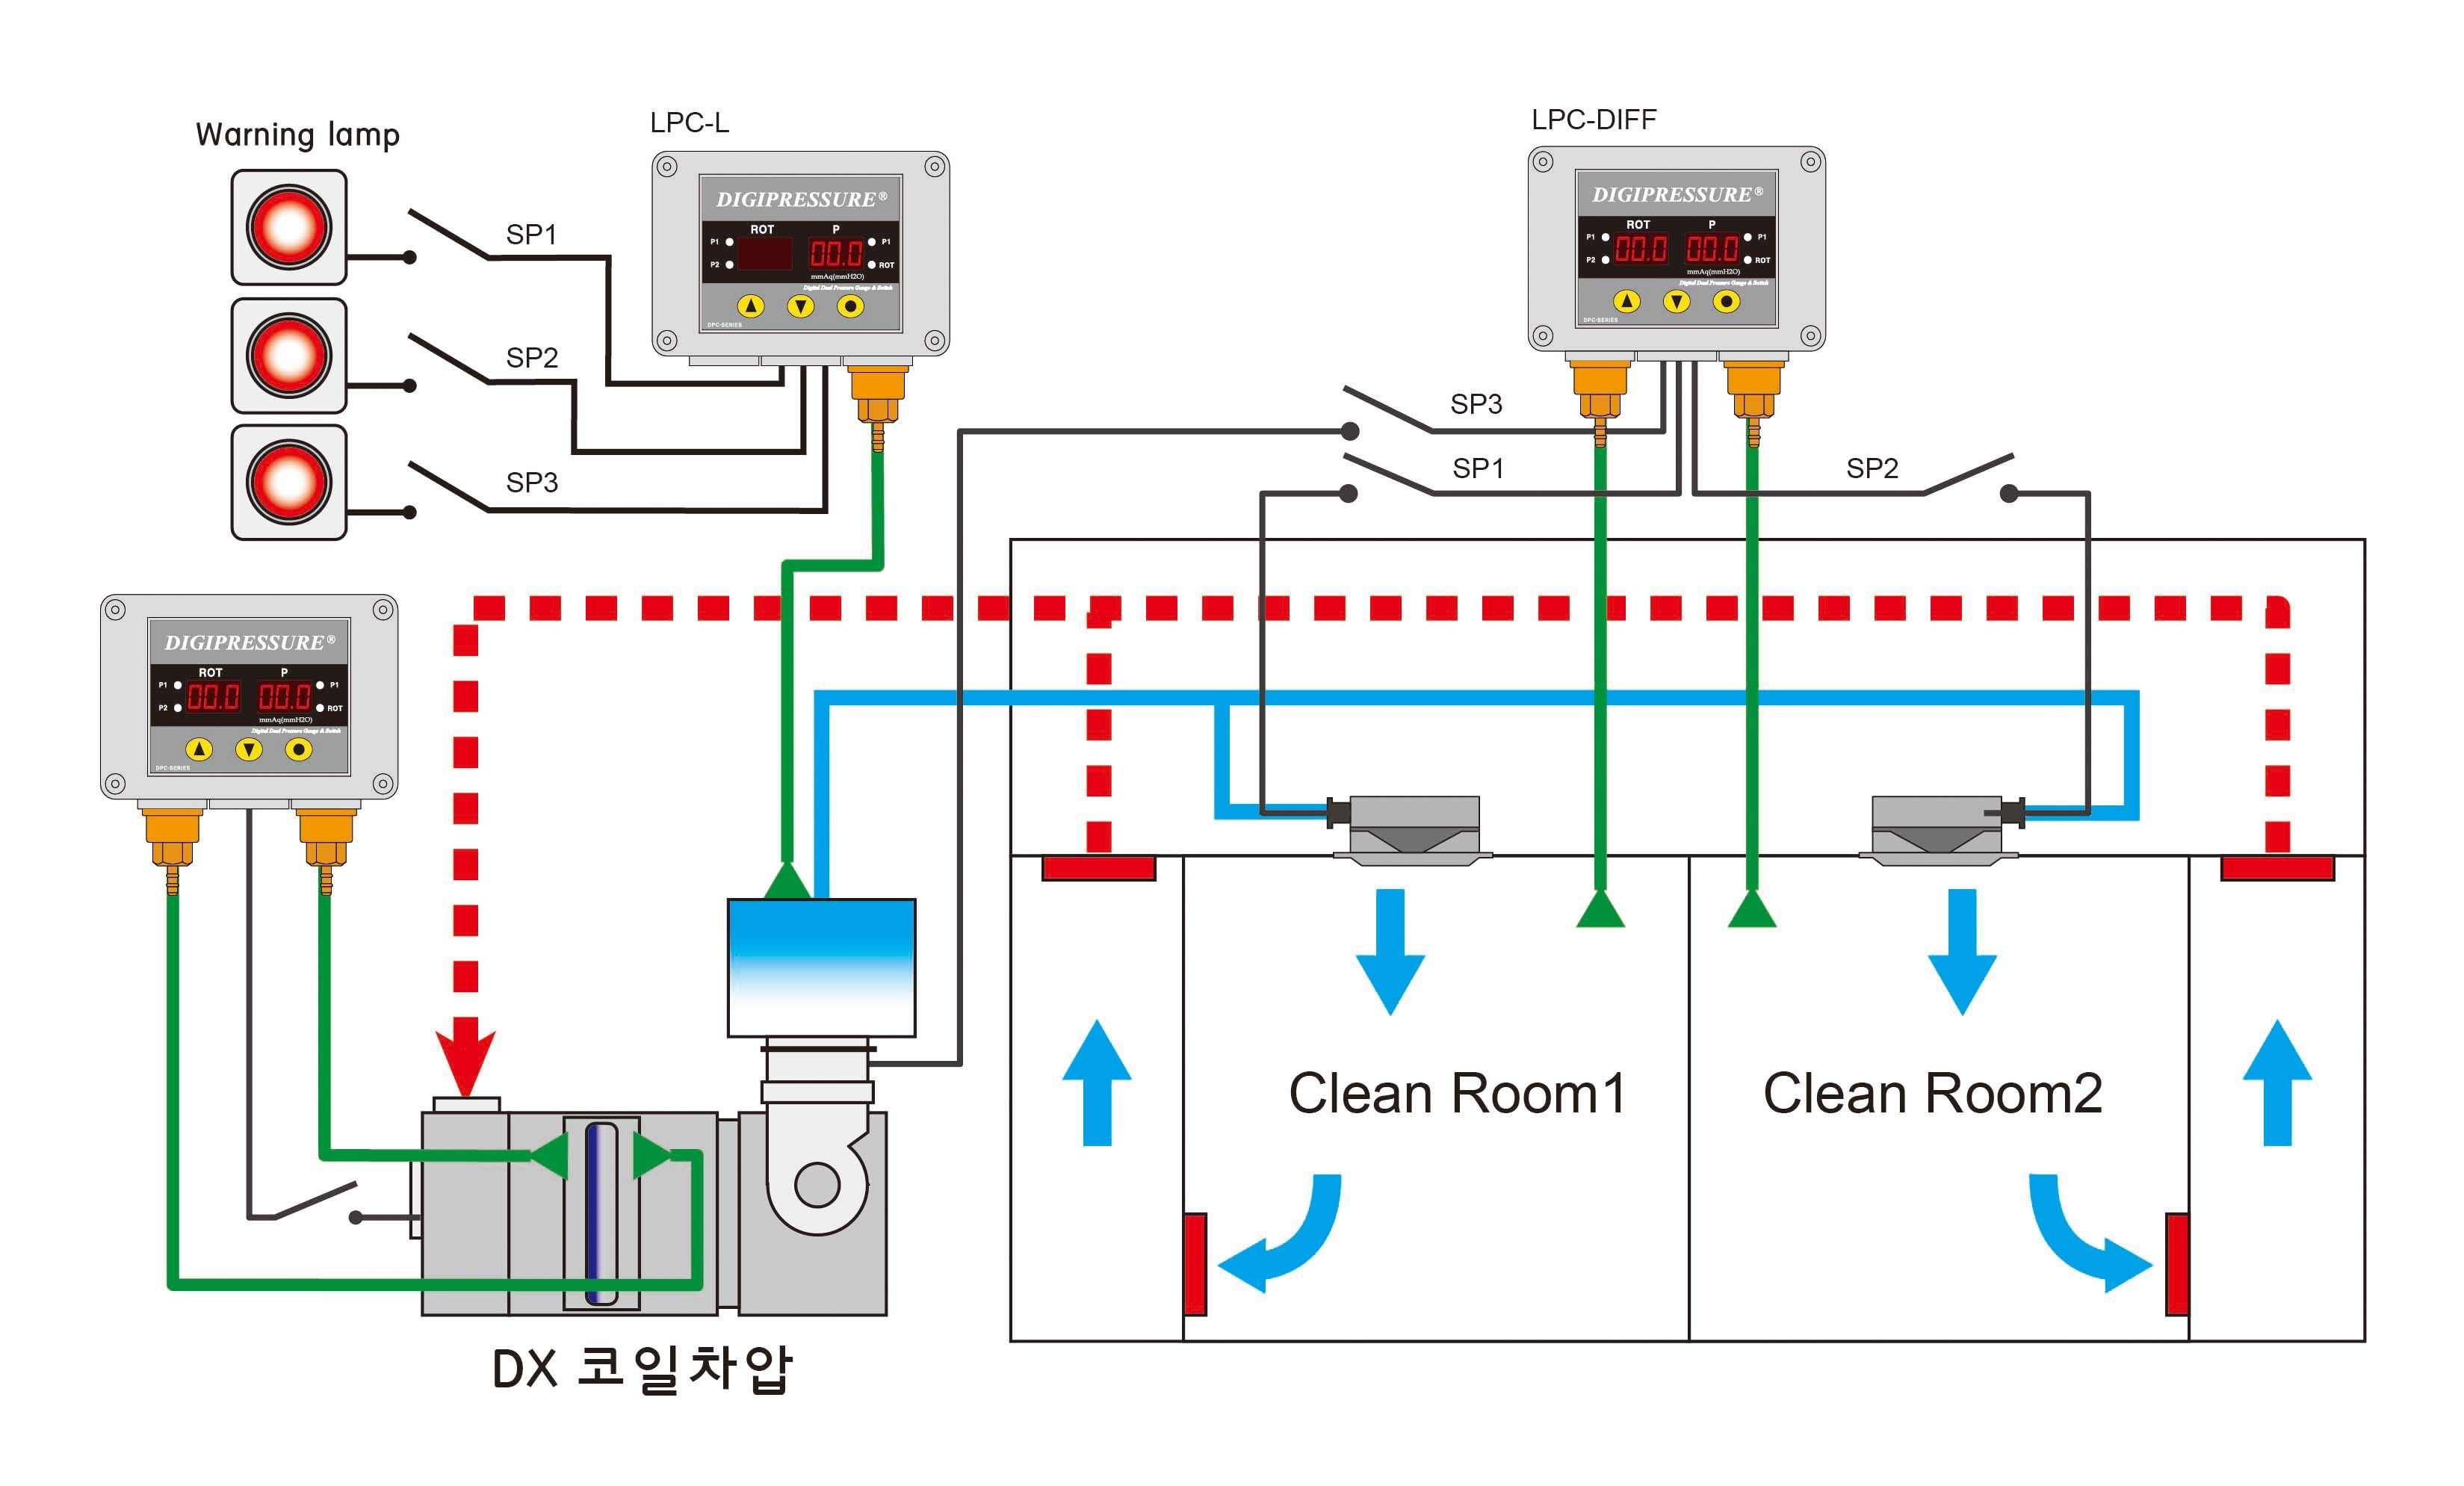 Apartment Air System : Image result for clean room air system undercover